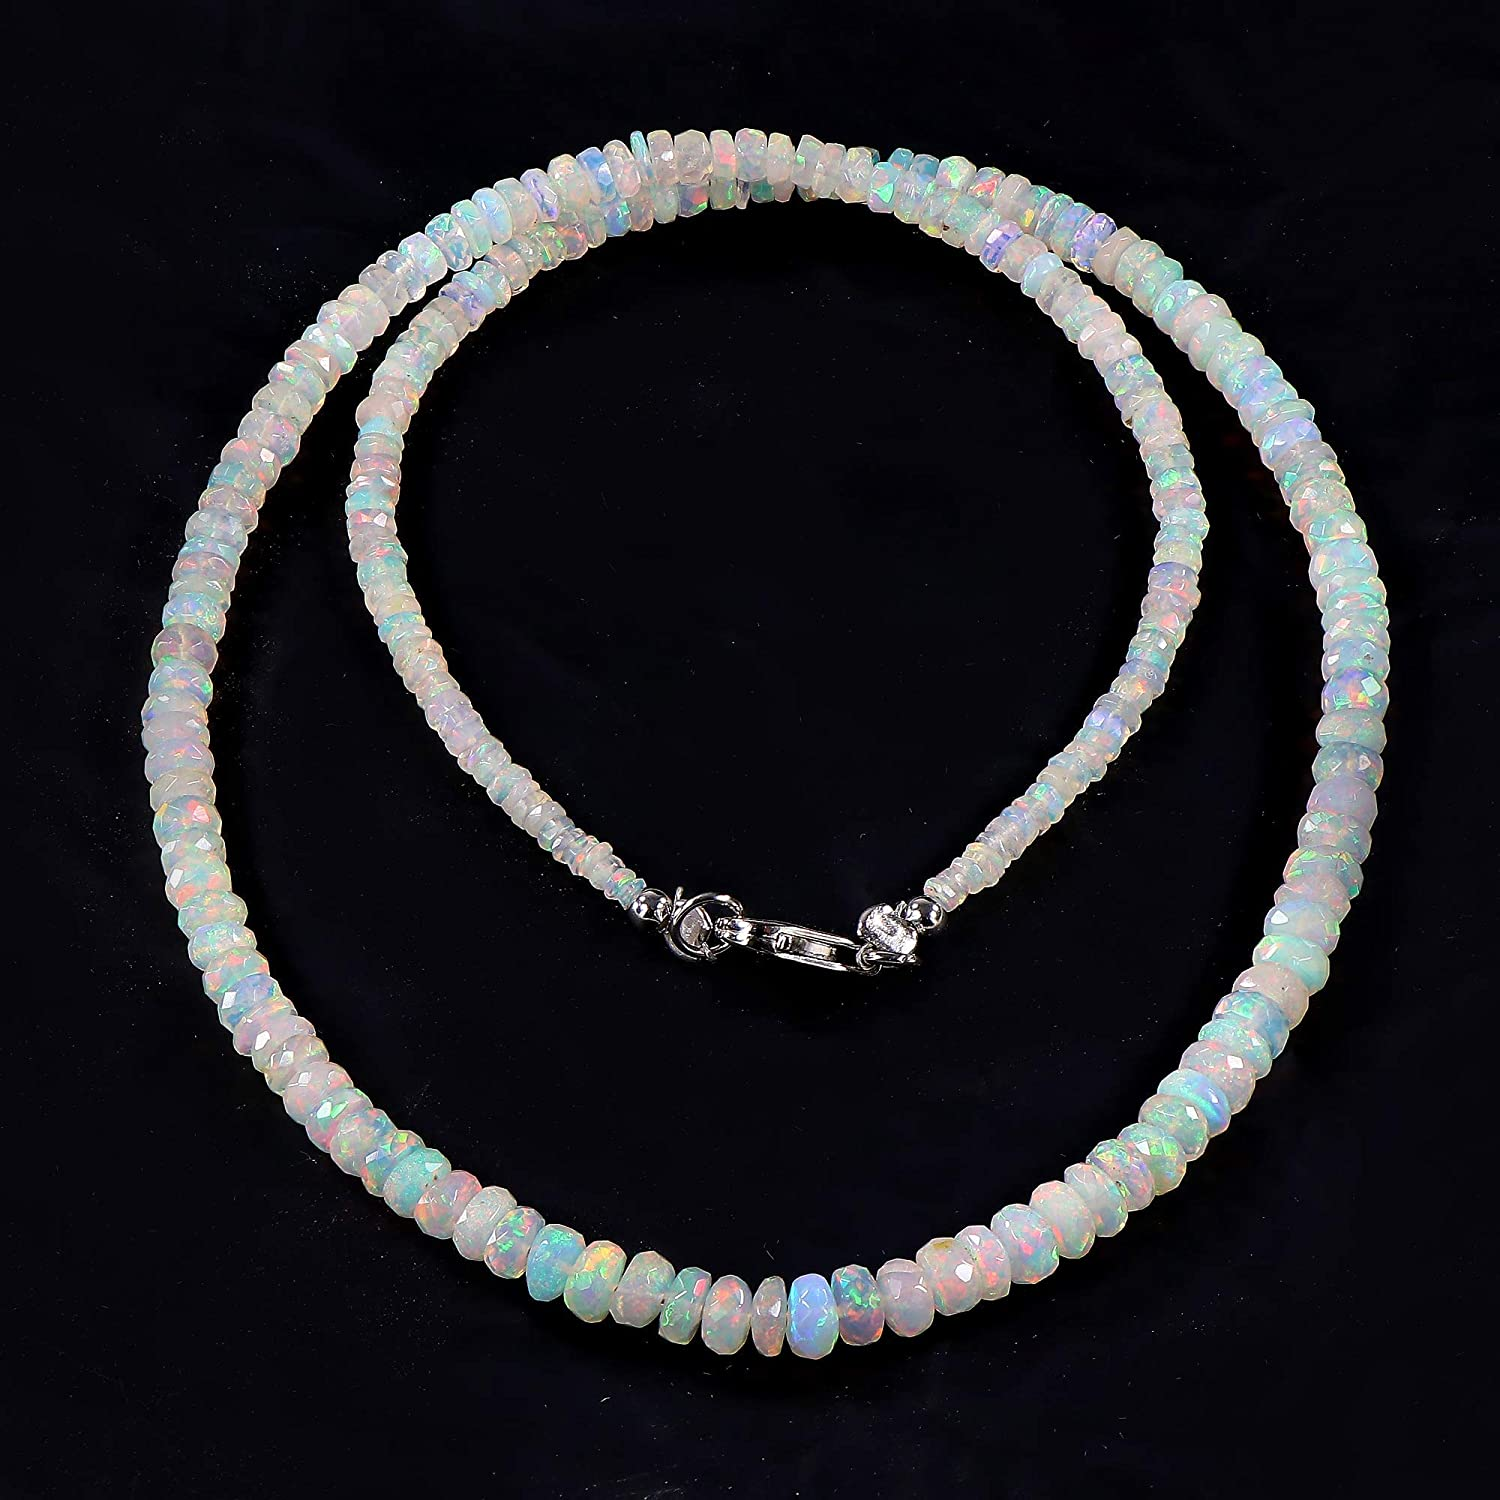 Multi Fire Opal Tumble Handmade Spinel Opal  Necklace 28 Carat 17 Natural Ethiopian Opal Tumble Necklace Black Spinel Necklace